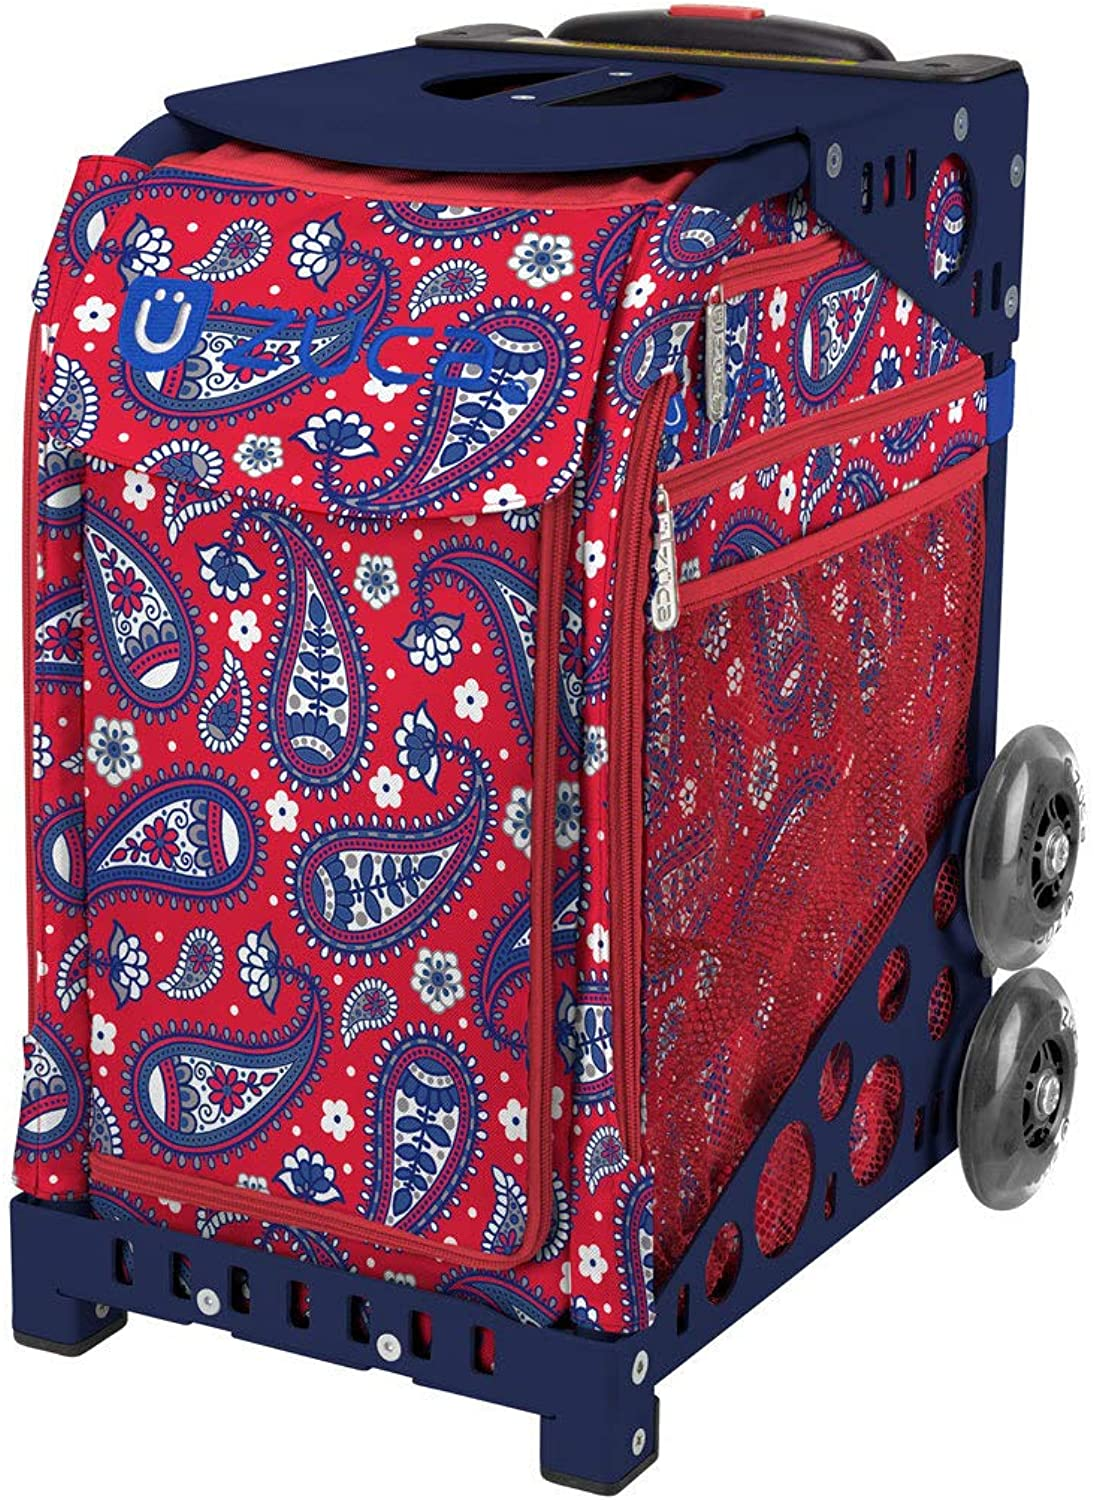 1dfadebdb20f ZUCA Sport with Builtin Seat Paisley in Insert Bag, Choose Your ...